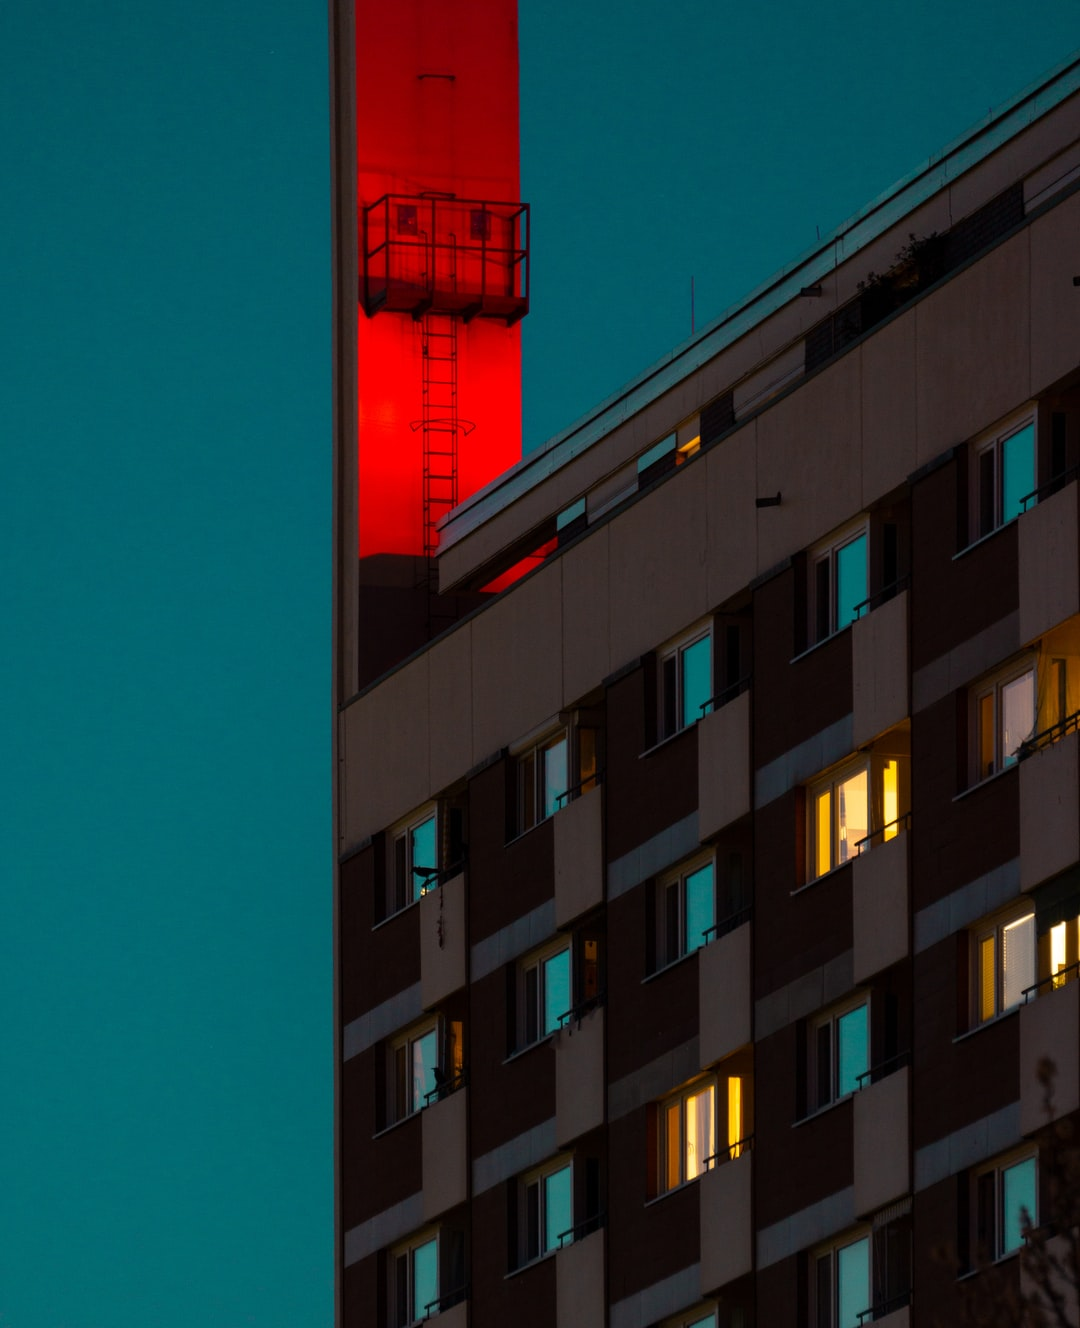 Red lit chimney on residential building